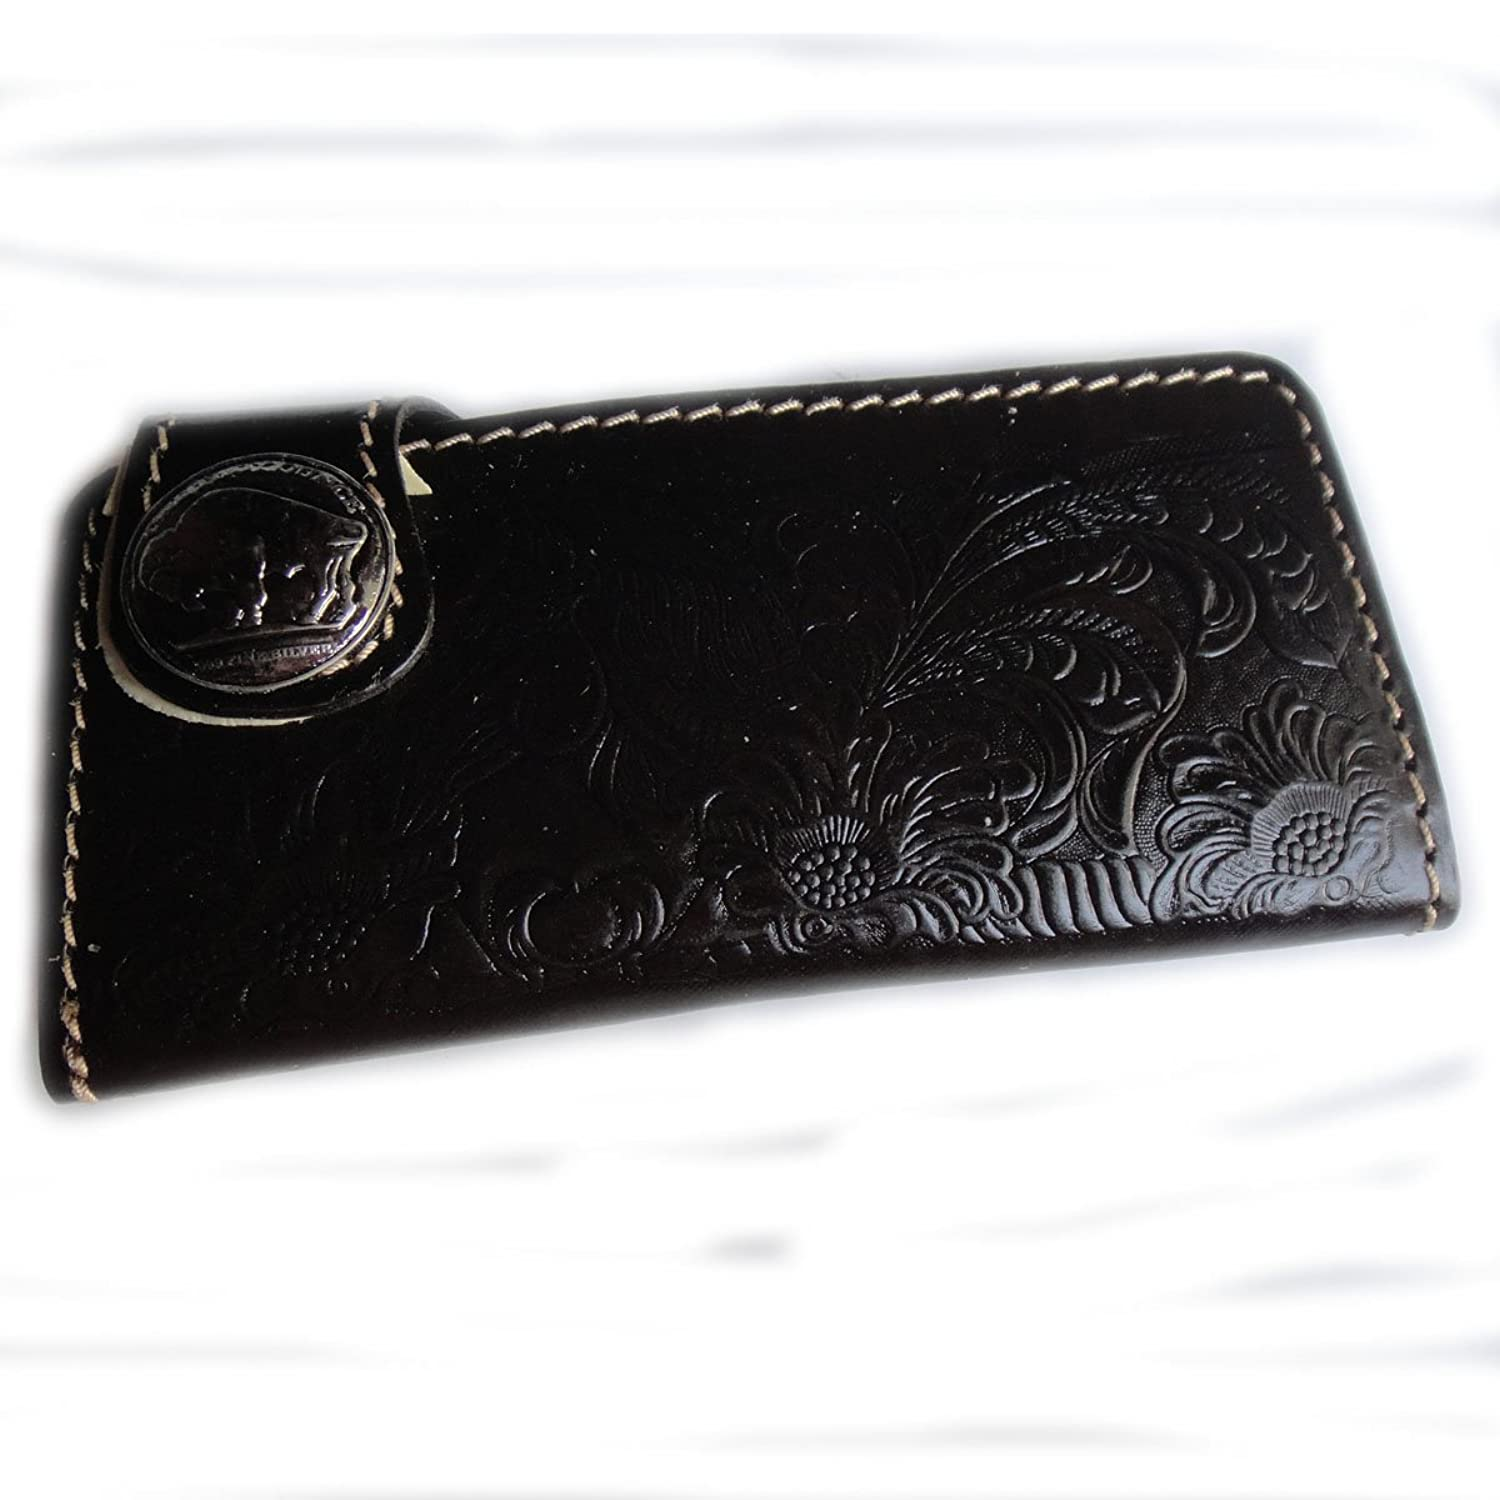 BIKER AND TRUCKER CLUTCH WALLET WITH CHAIN MADE FROM COW HIDE